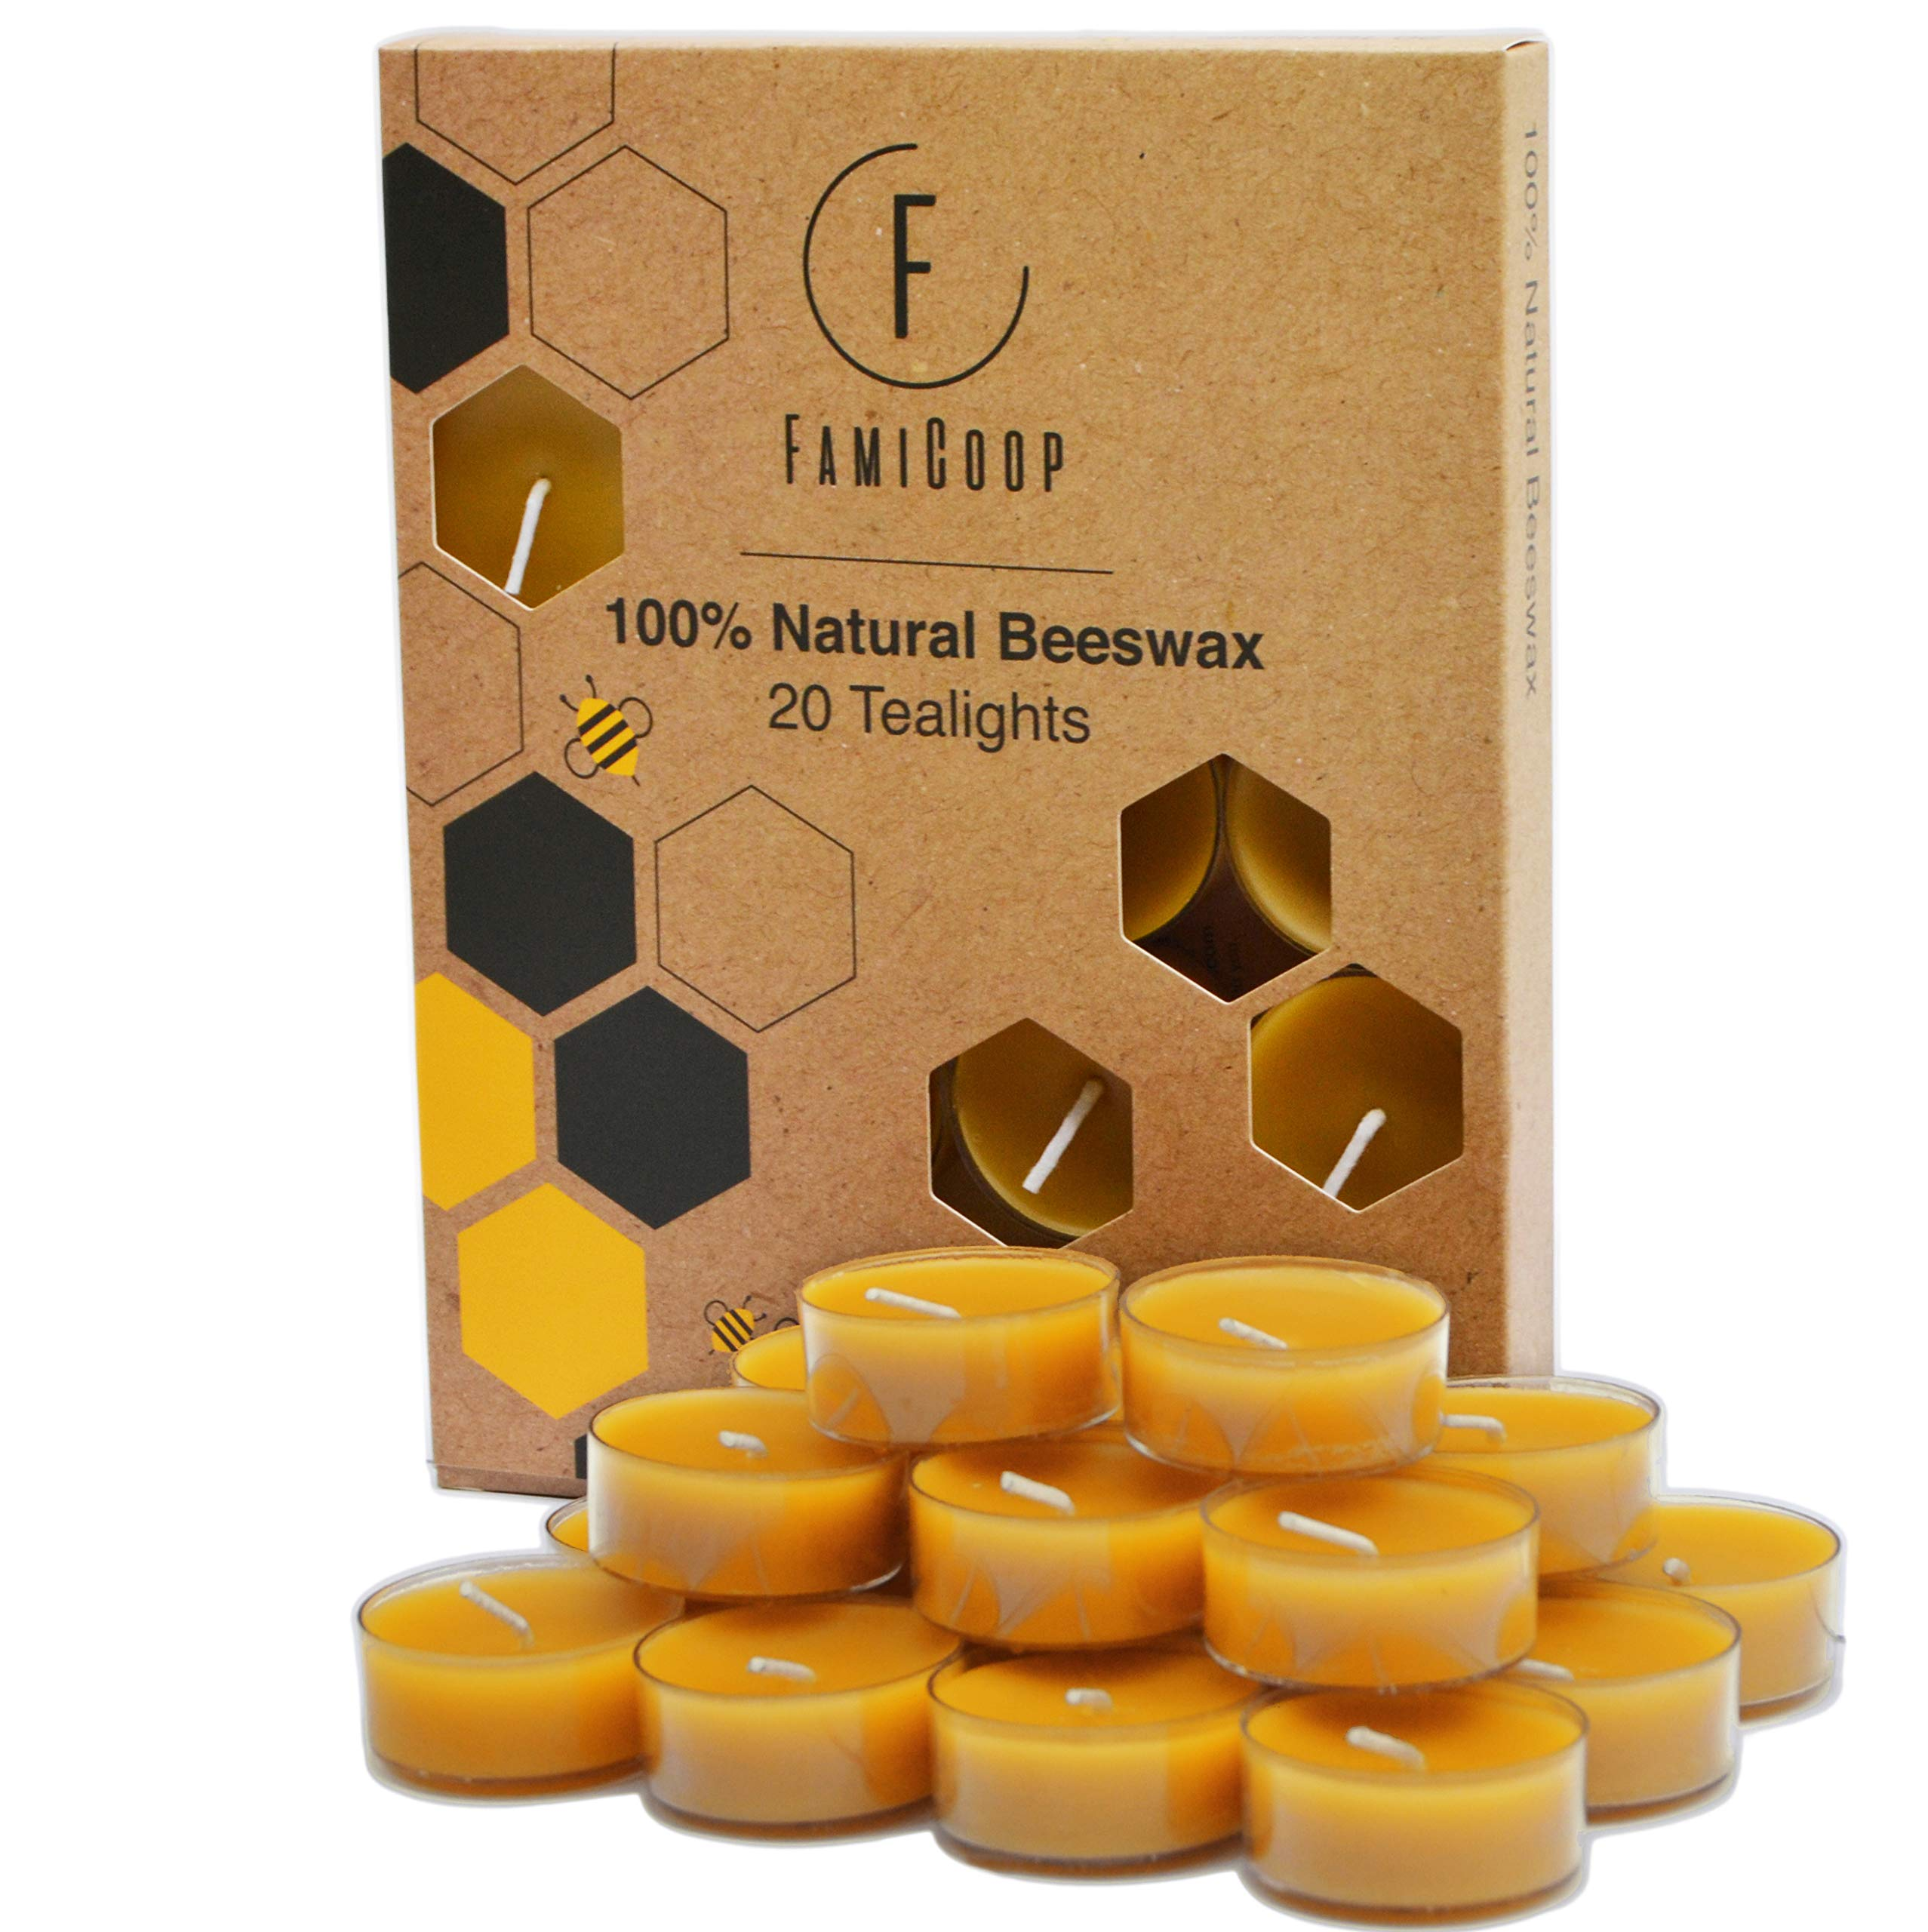 100% Pure Beeswax Candles - 20PC Non Toxic Candles - Fill Your Home With the Warm Glow of Natural Beeswax Tealight Candles - Makes the Perfect Gift